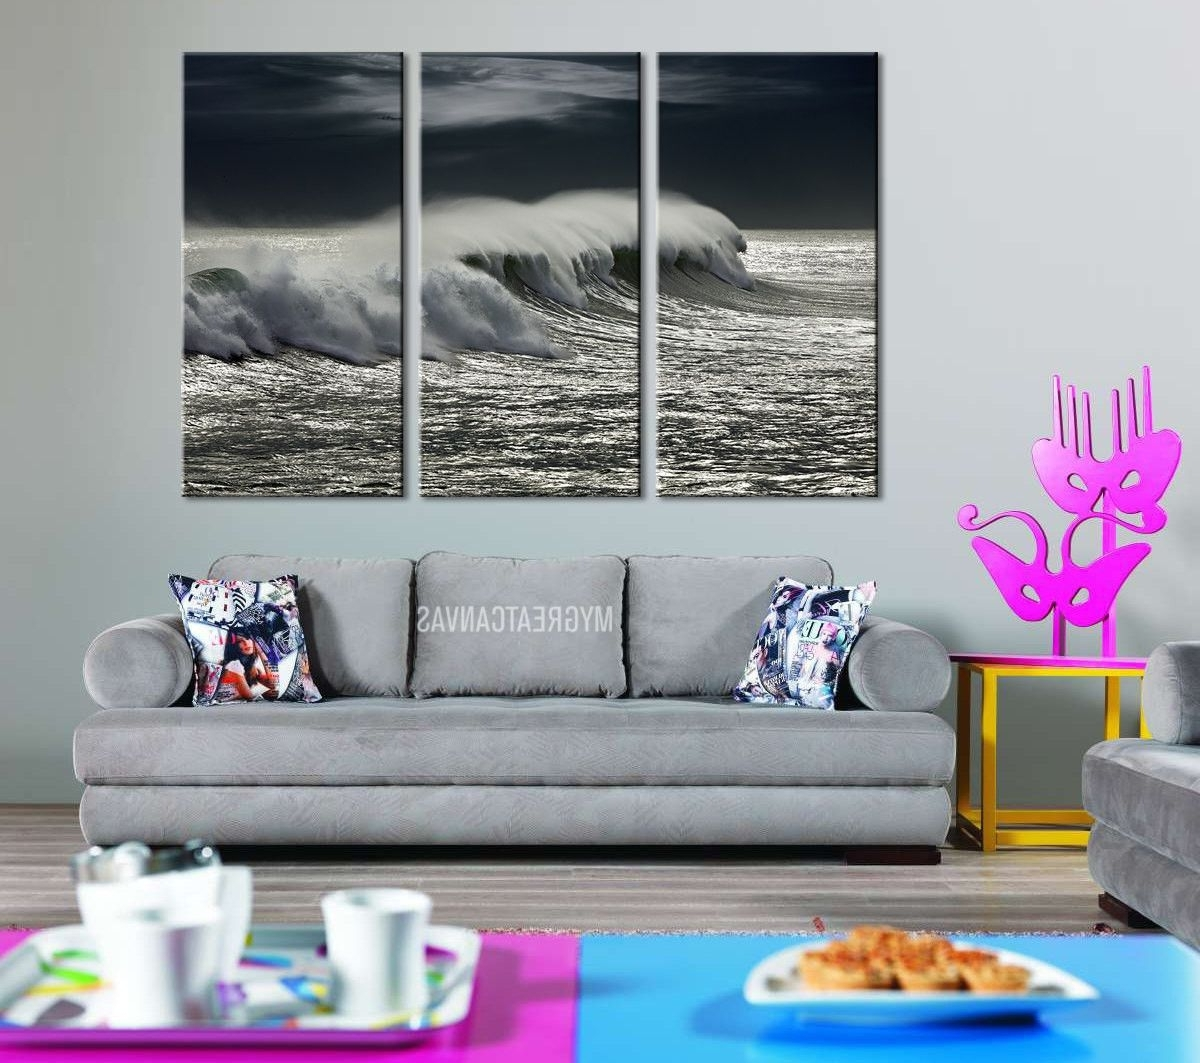 Large Wall Art Giclee 3 Panel Canvas Print – Black And White Ocean Within Well Liked Ocean Canvas Wall Art (View 4 of 15)